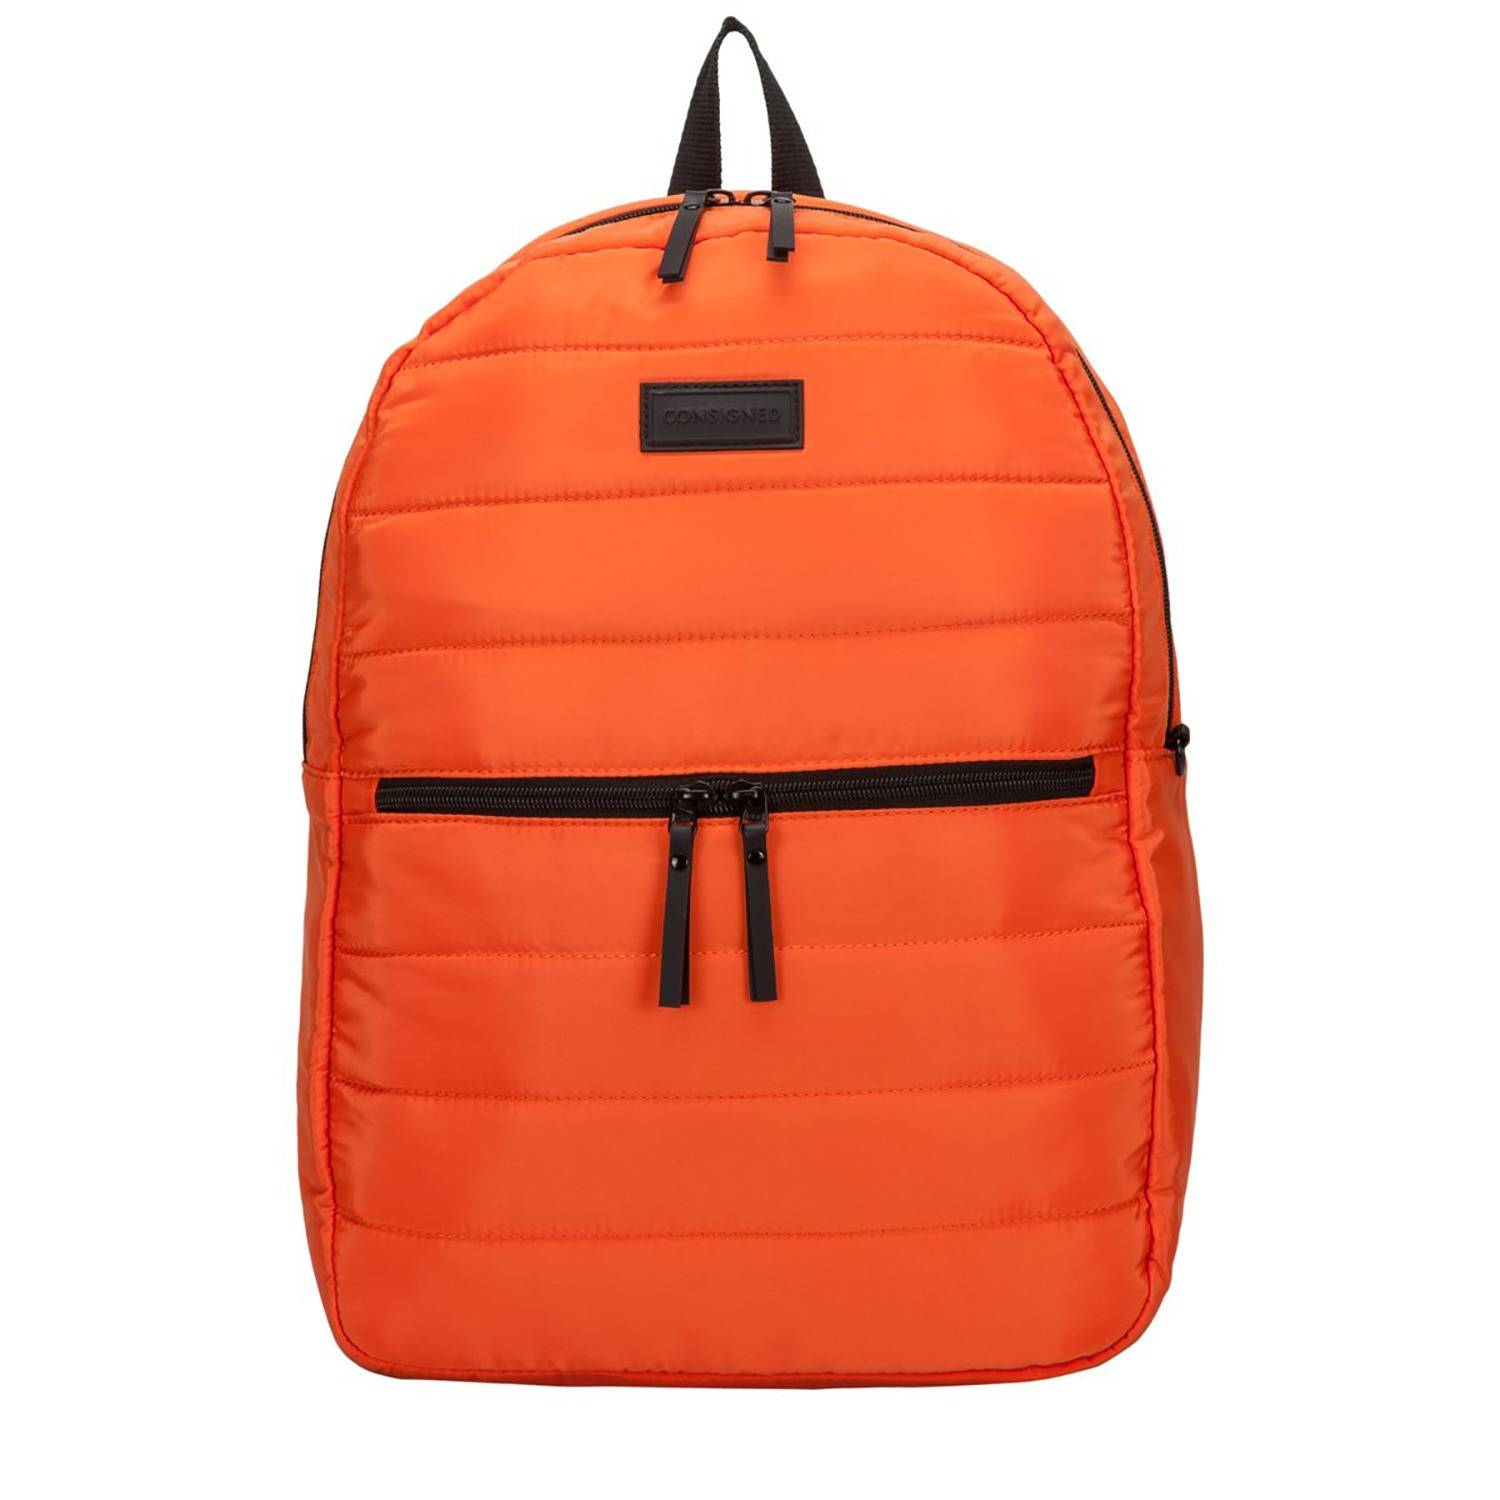 CONSIGNED Orange Reeve Backpack CONSIGNED